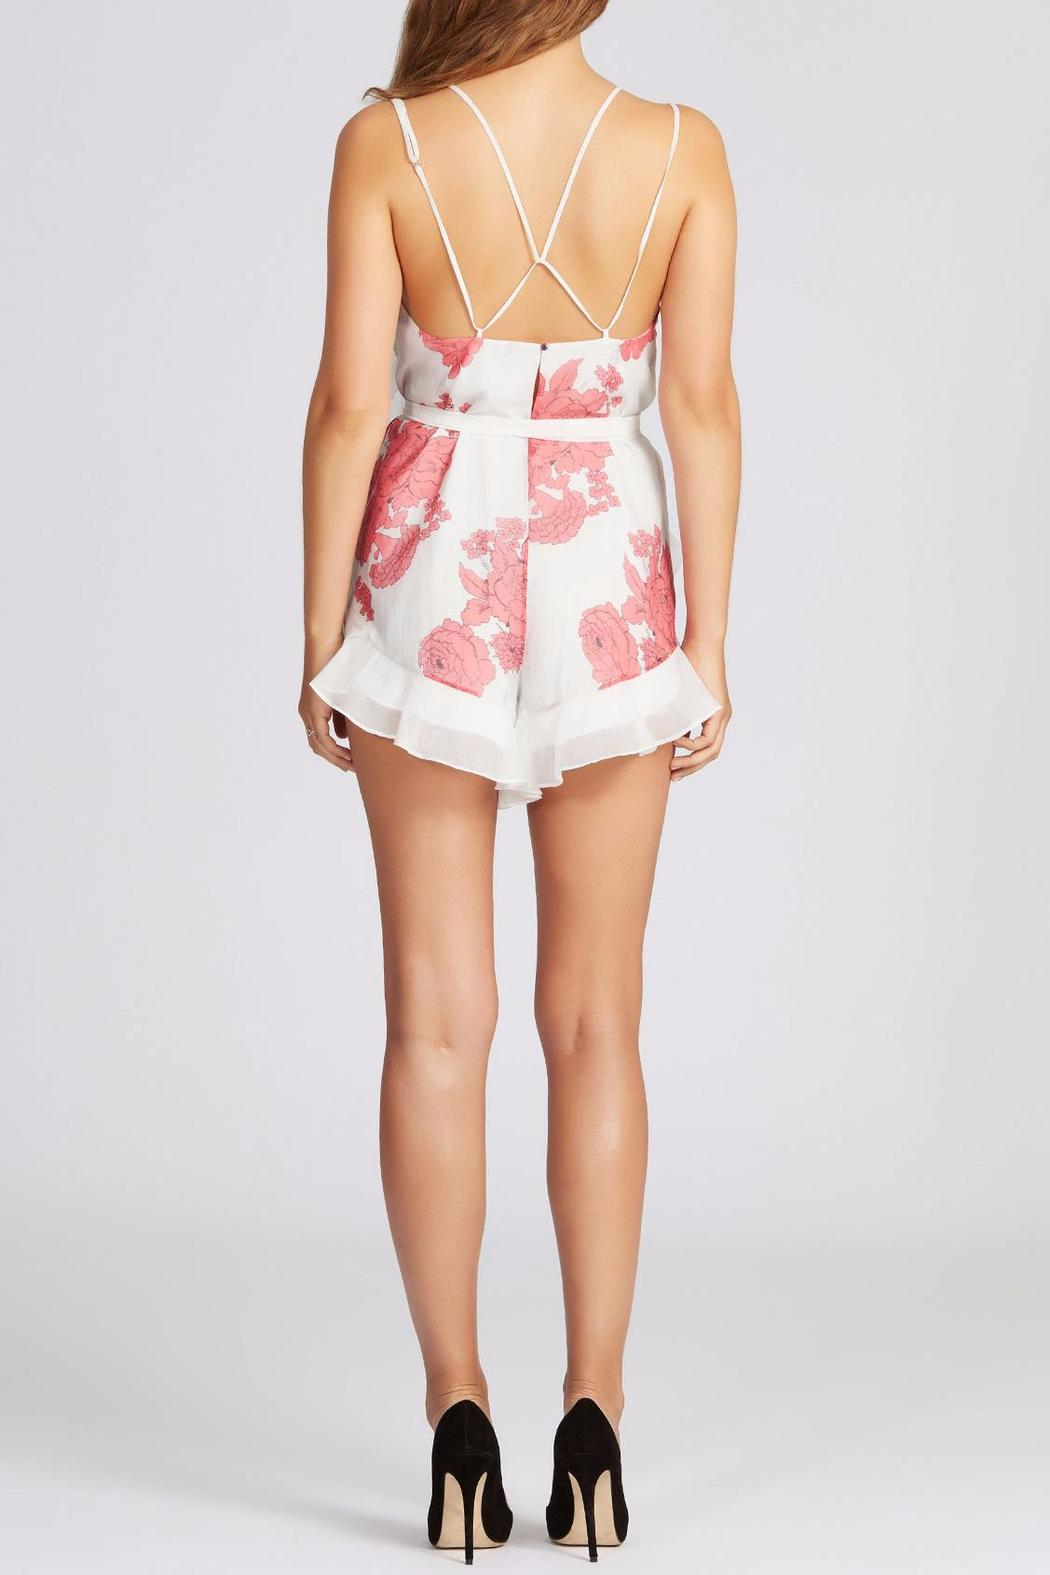 e1ae3d78f5 Alice McCall Goddess Romper from Queensland by Soho Girl — Shoptiques